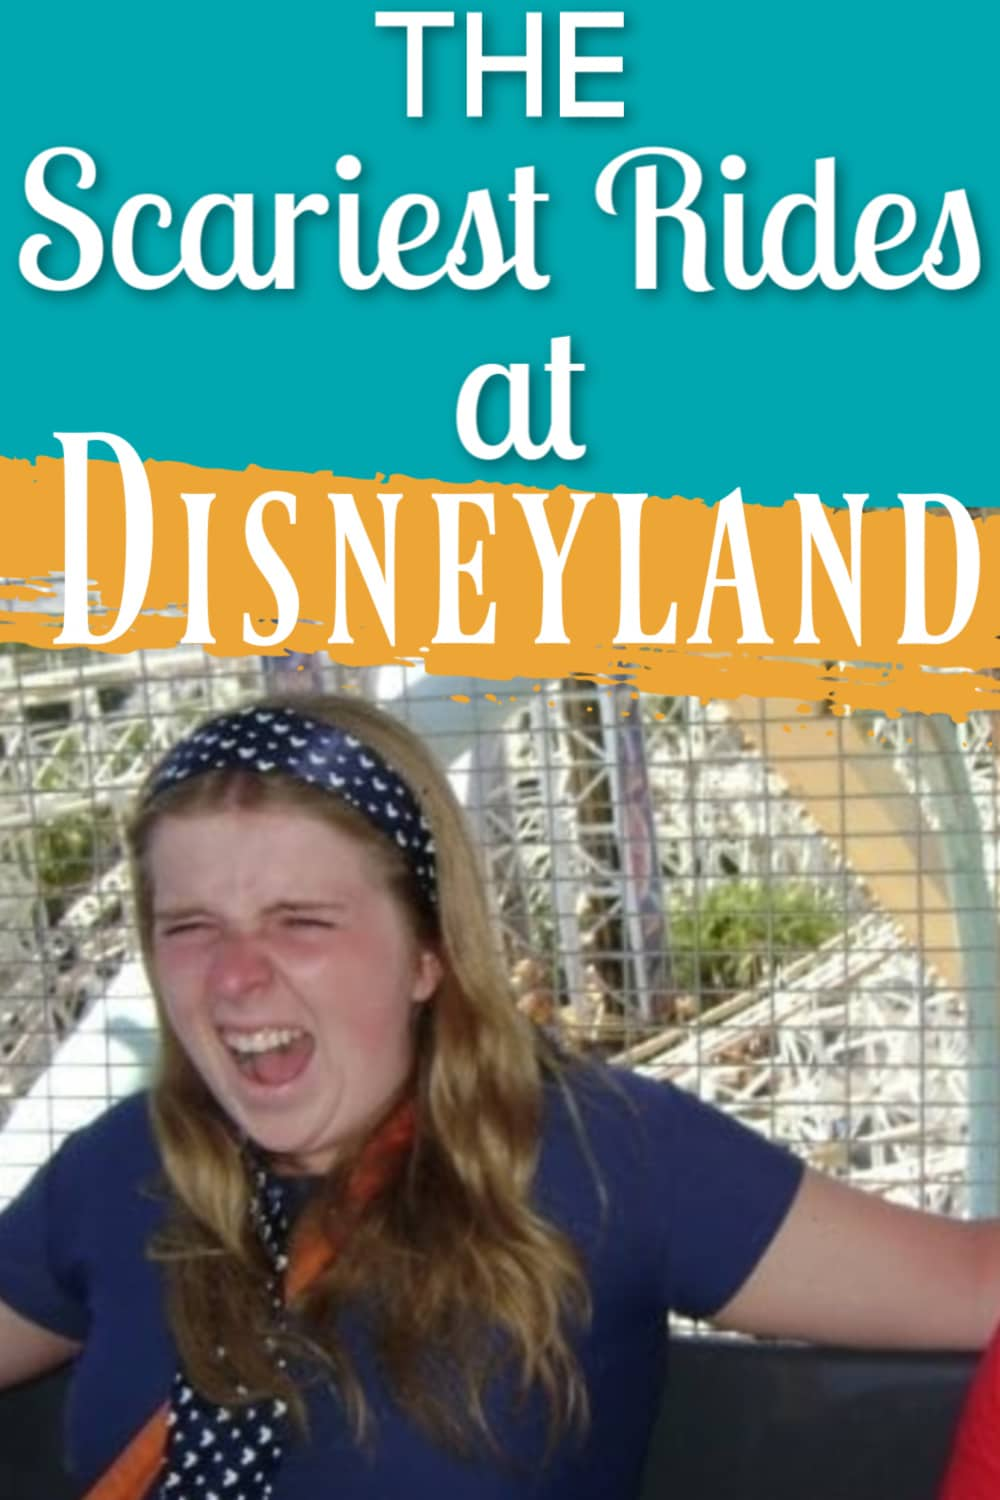 disneyland / disneyland tips / rides at disneyland / #disneyland #disneytips Disney Love / disneyland ride list / scariest rides at disneyland via @clarkscondensed